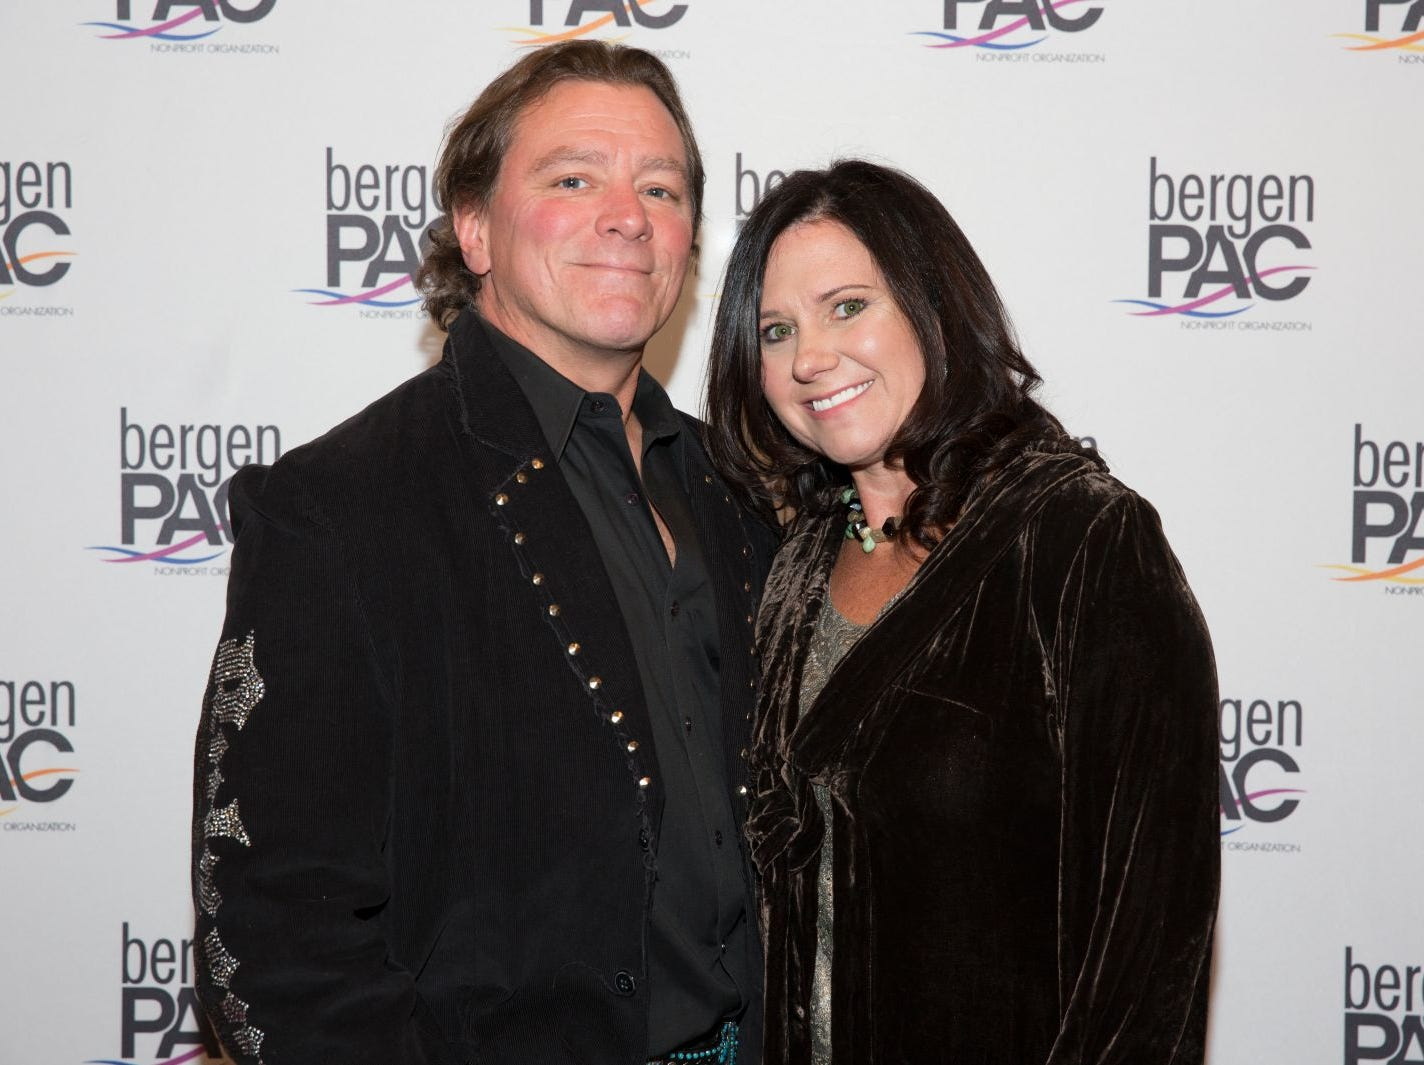 Andy and Susan Russ. BergenPAC held its annual fall gala featuring John Fogerty in Englewood. This year's honoree was Fernando Garip, from Wilmington Trust and M&T Bank. 11/08/2018